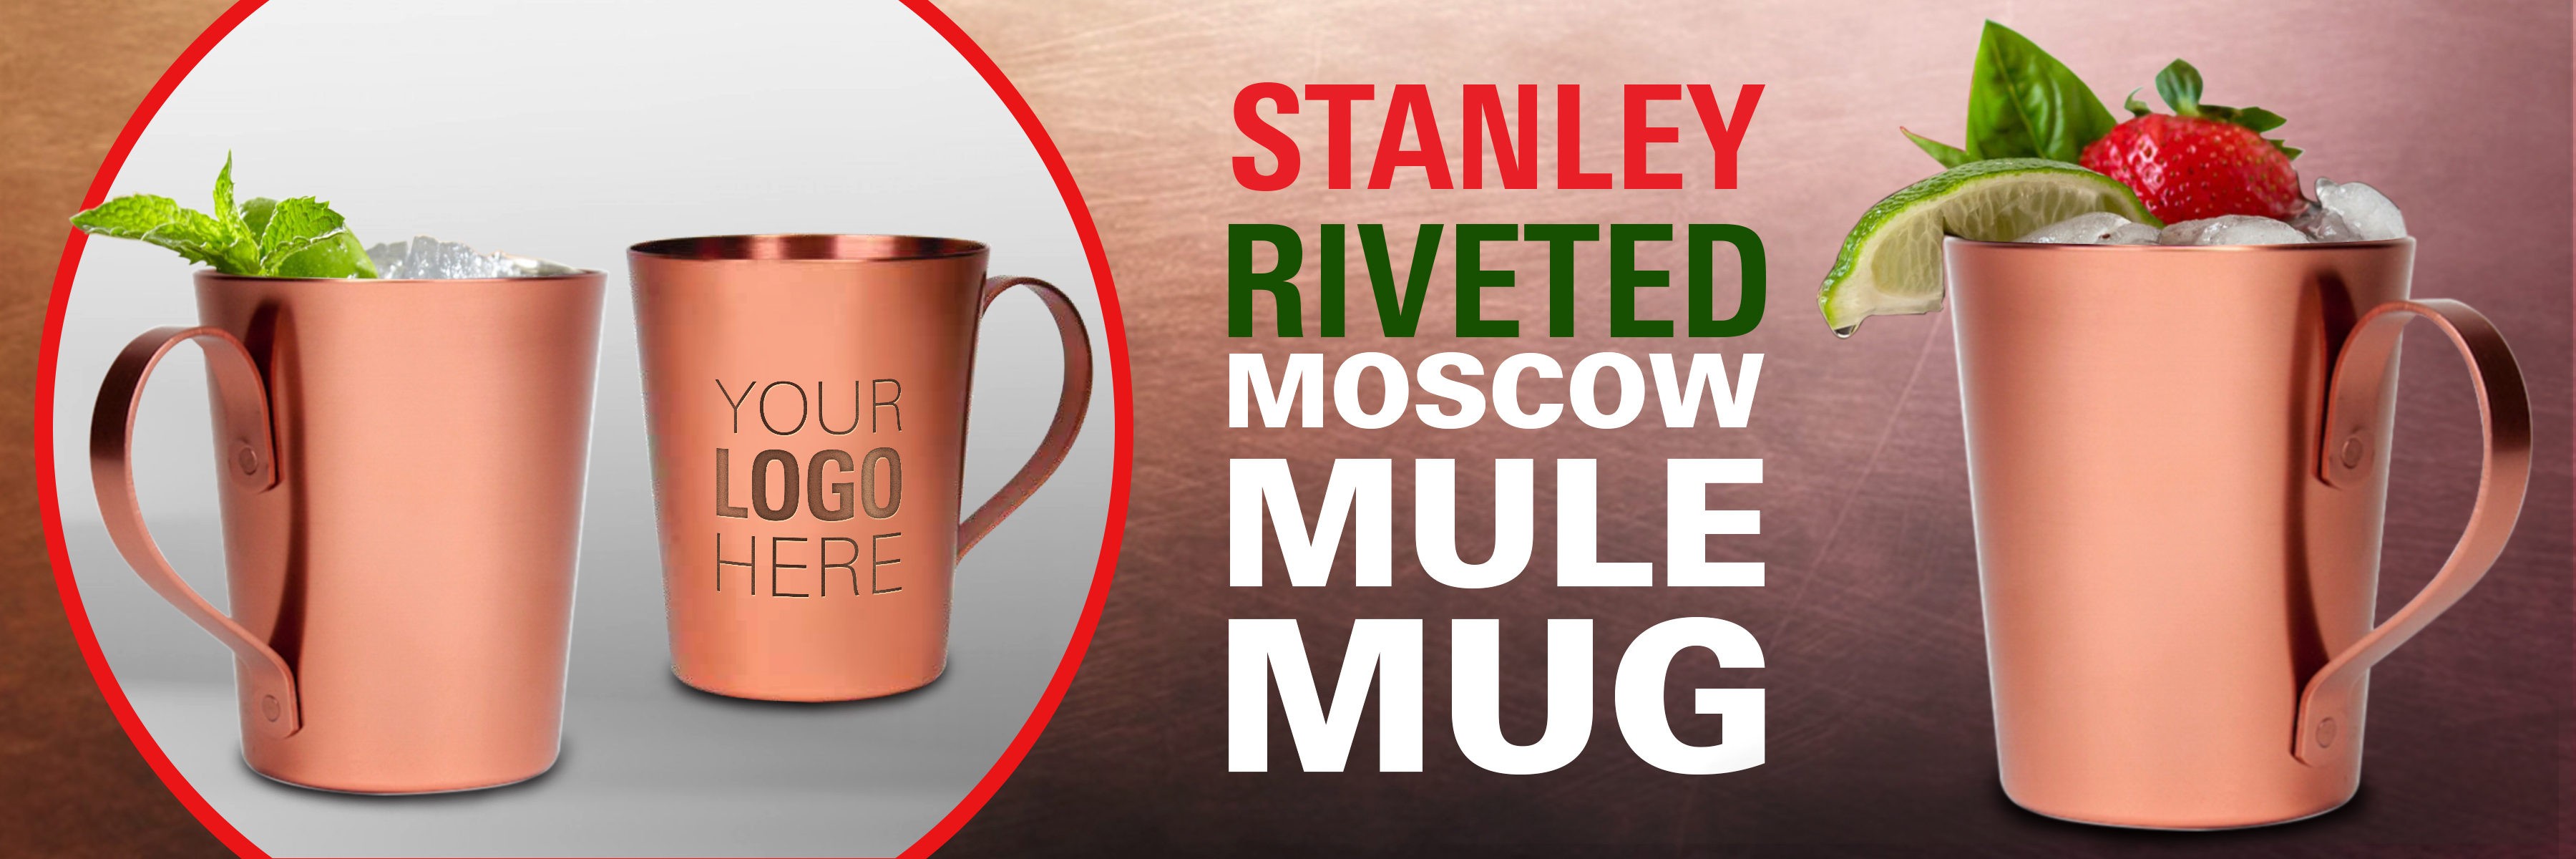 Stanley Riveted Moscow Mule